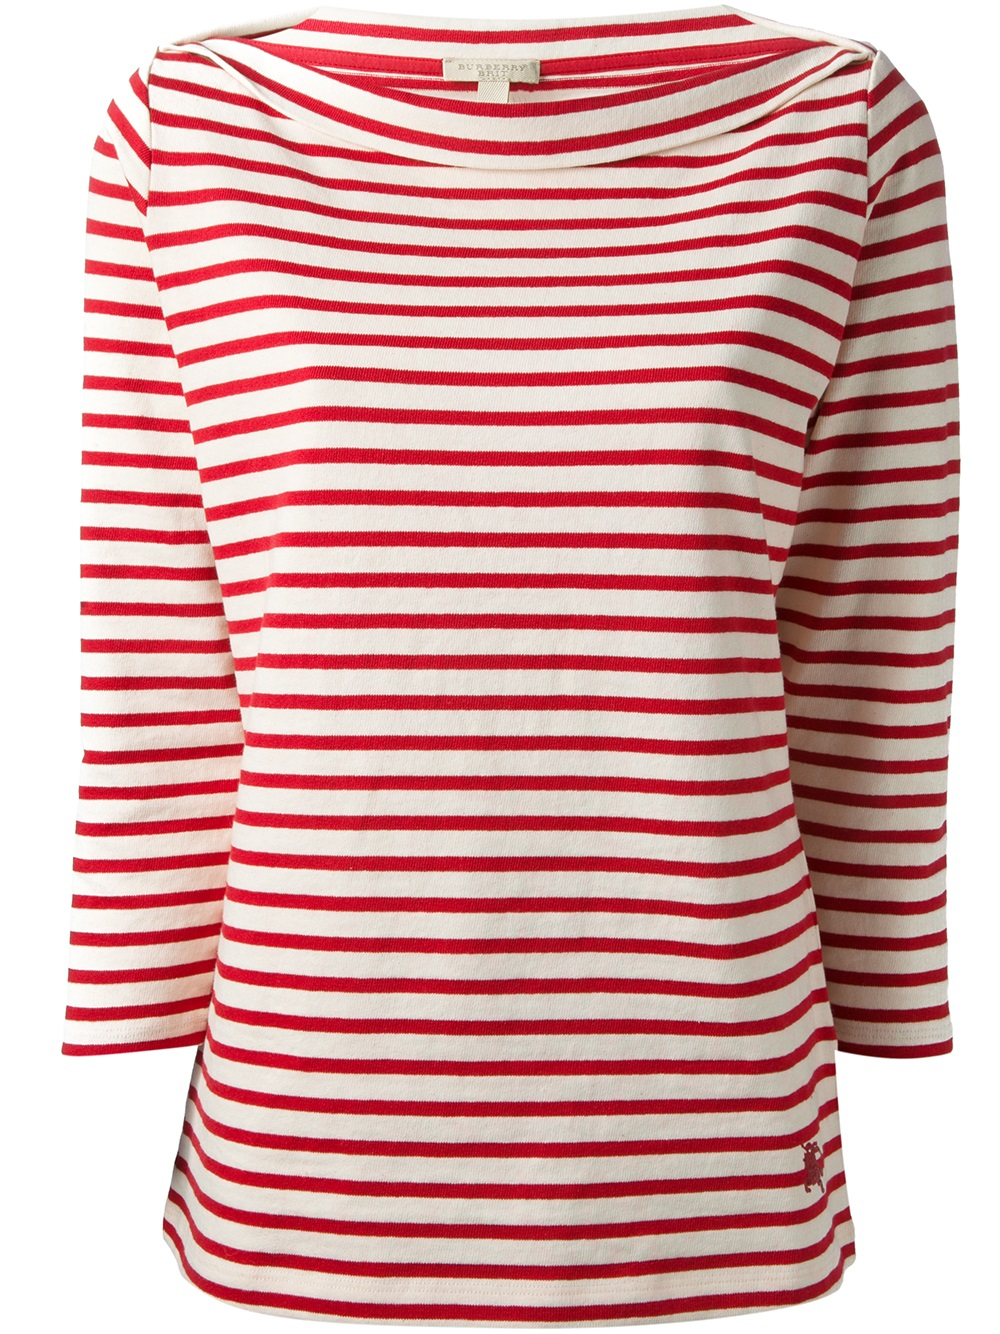 Red And White Striped Shirt Women